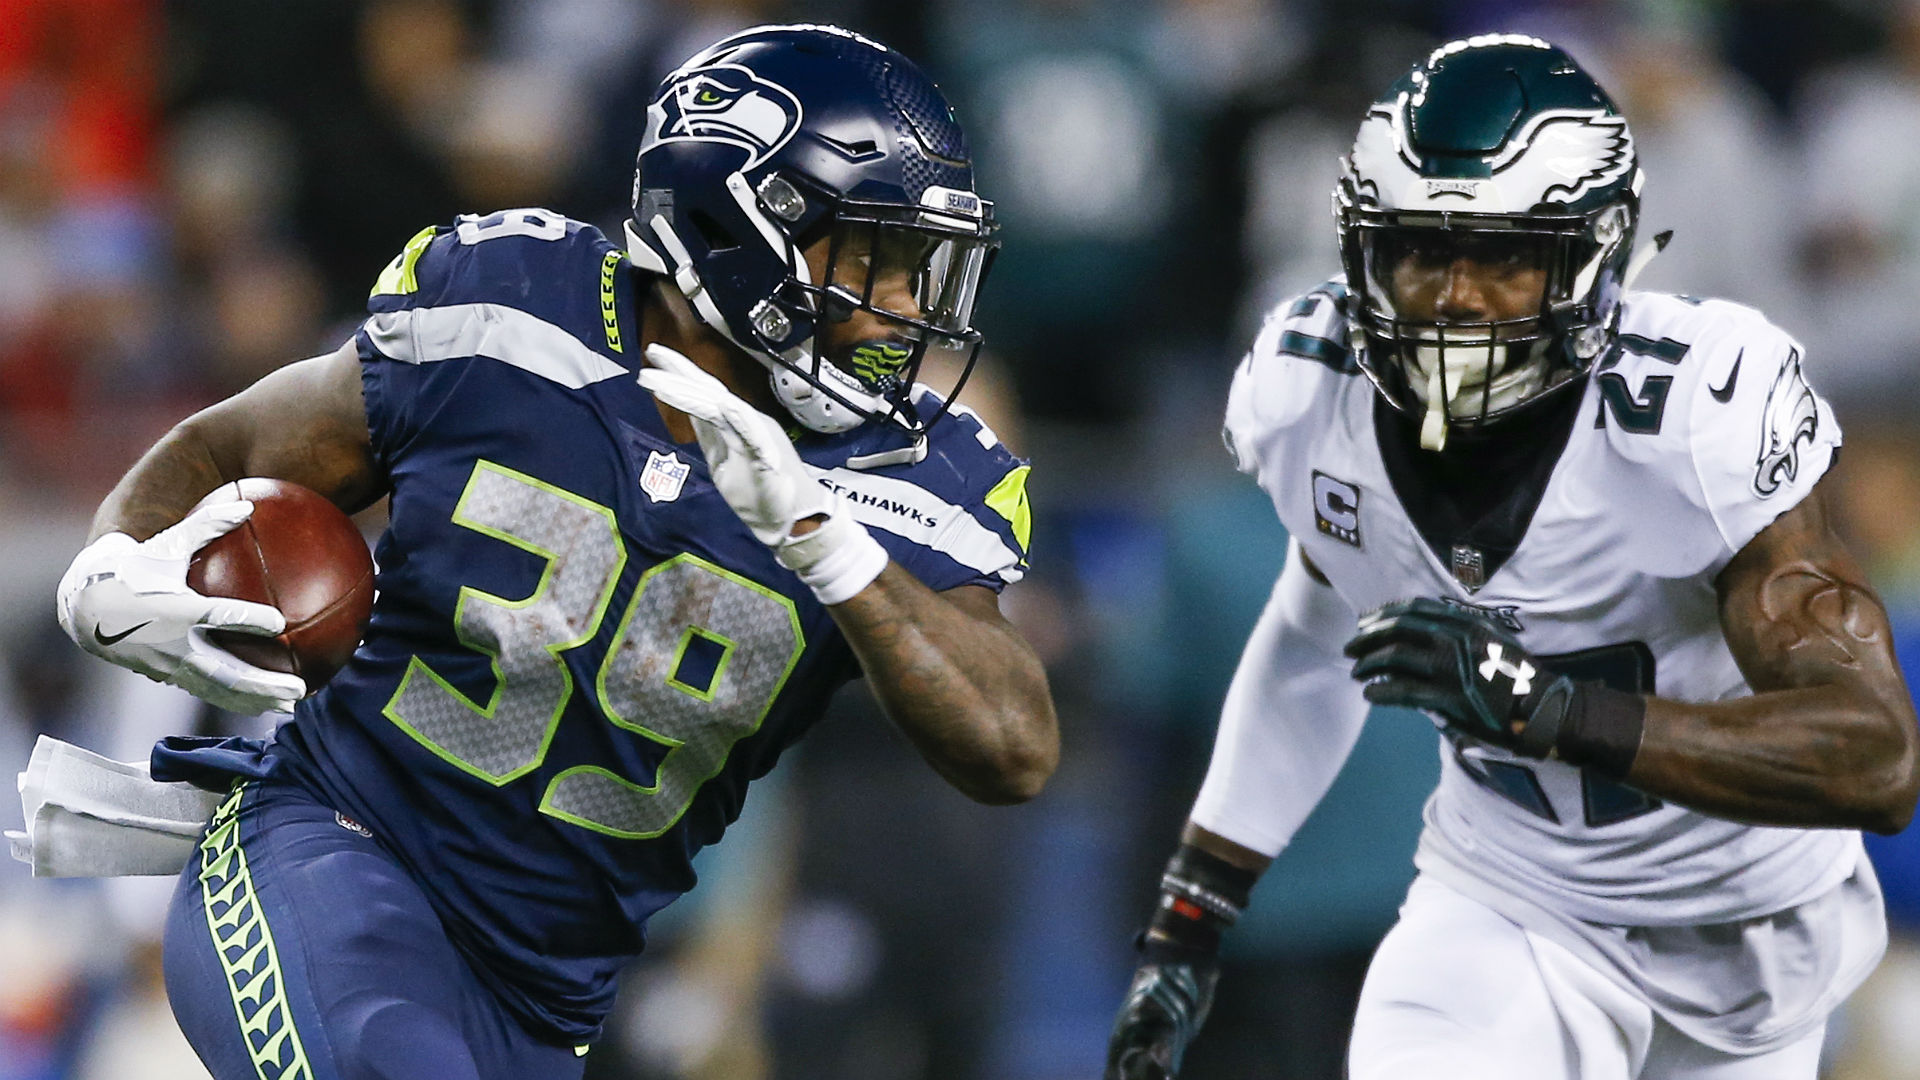 Three takeaways from Seahawks' win over Eagles